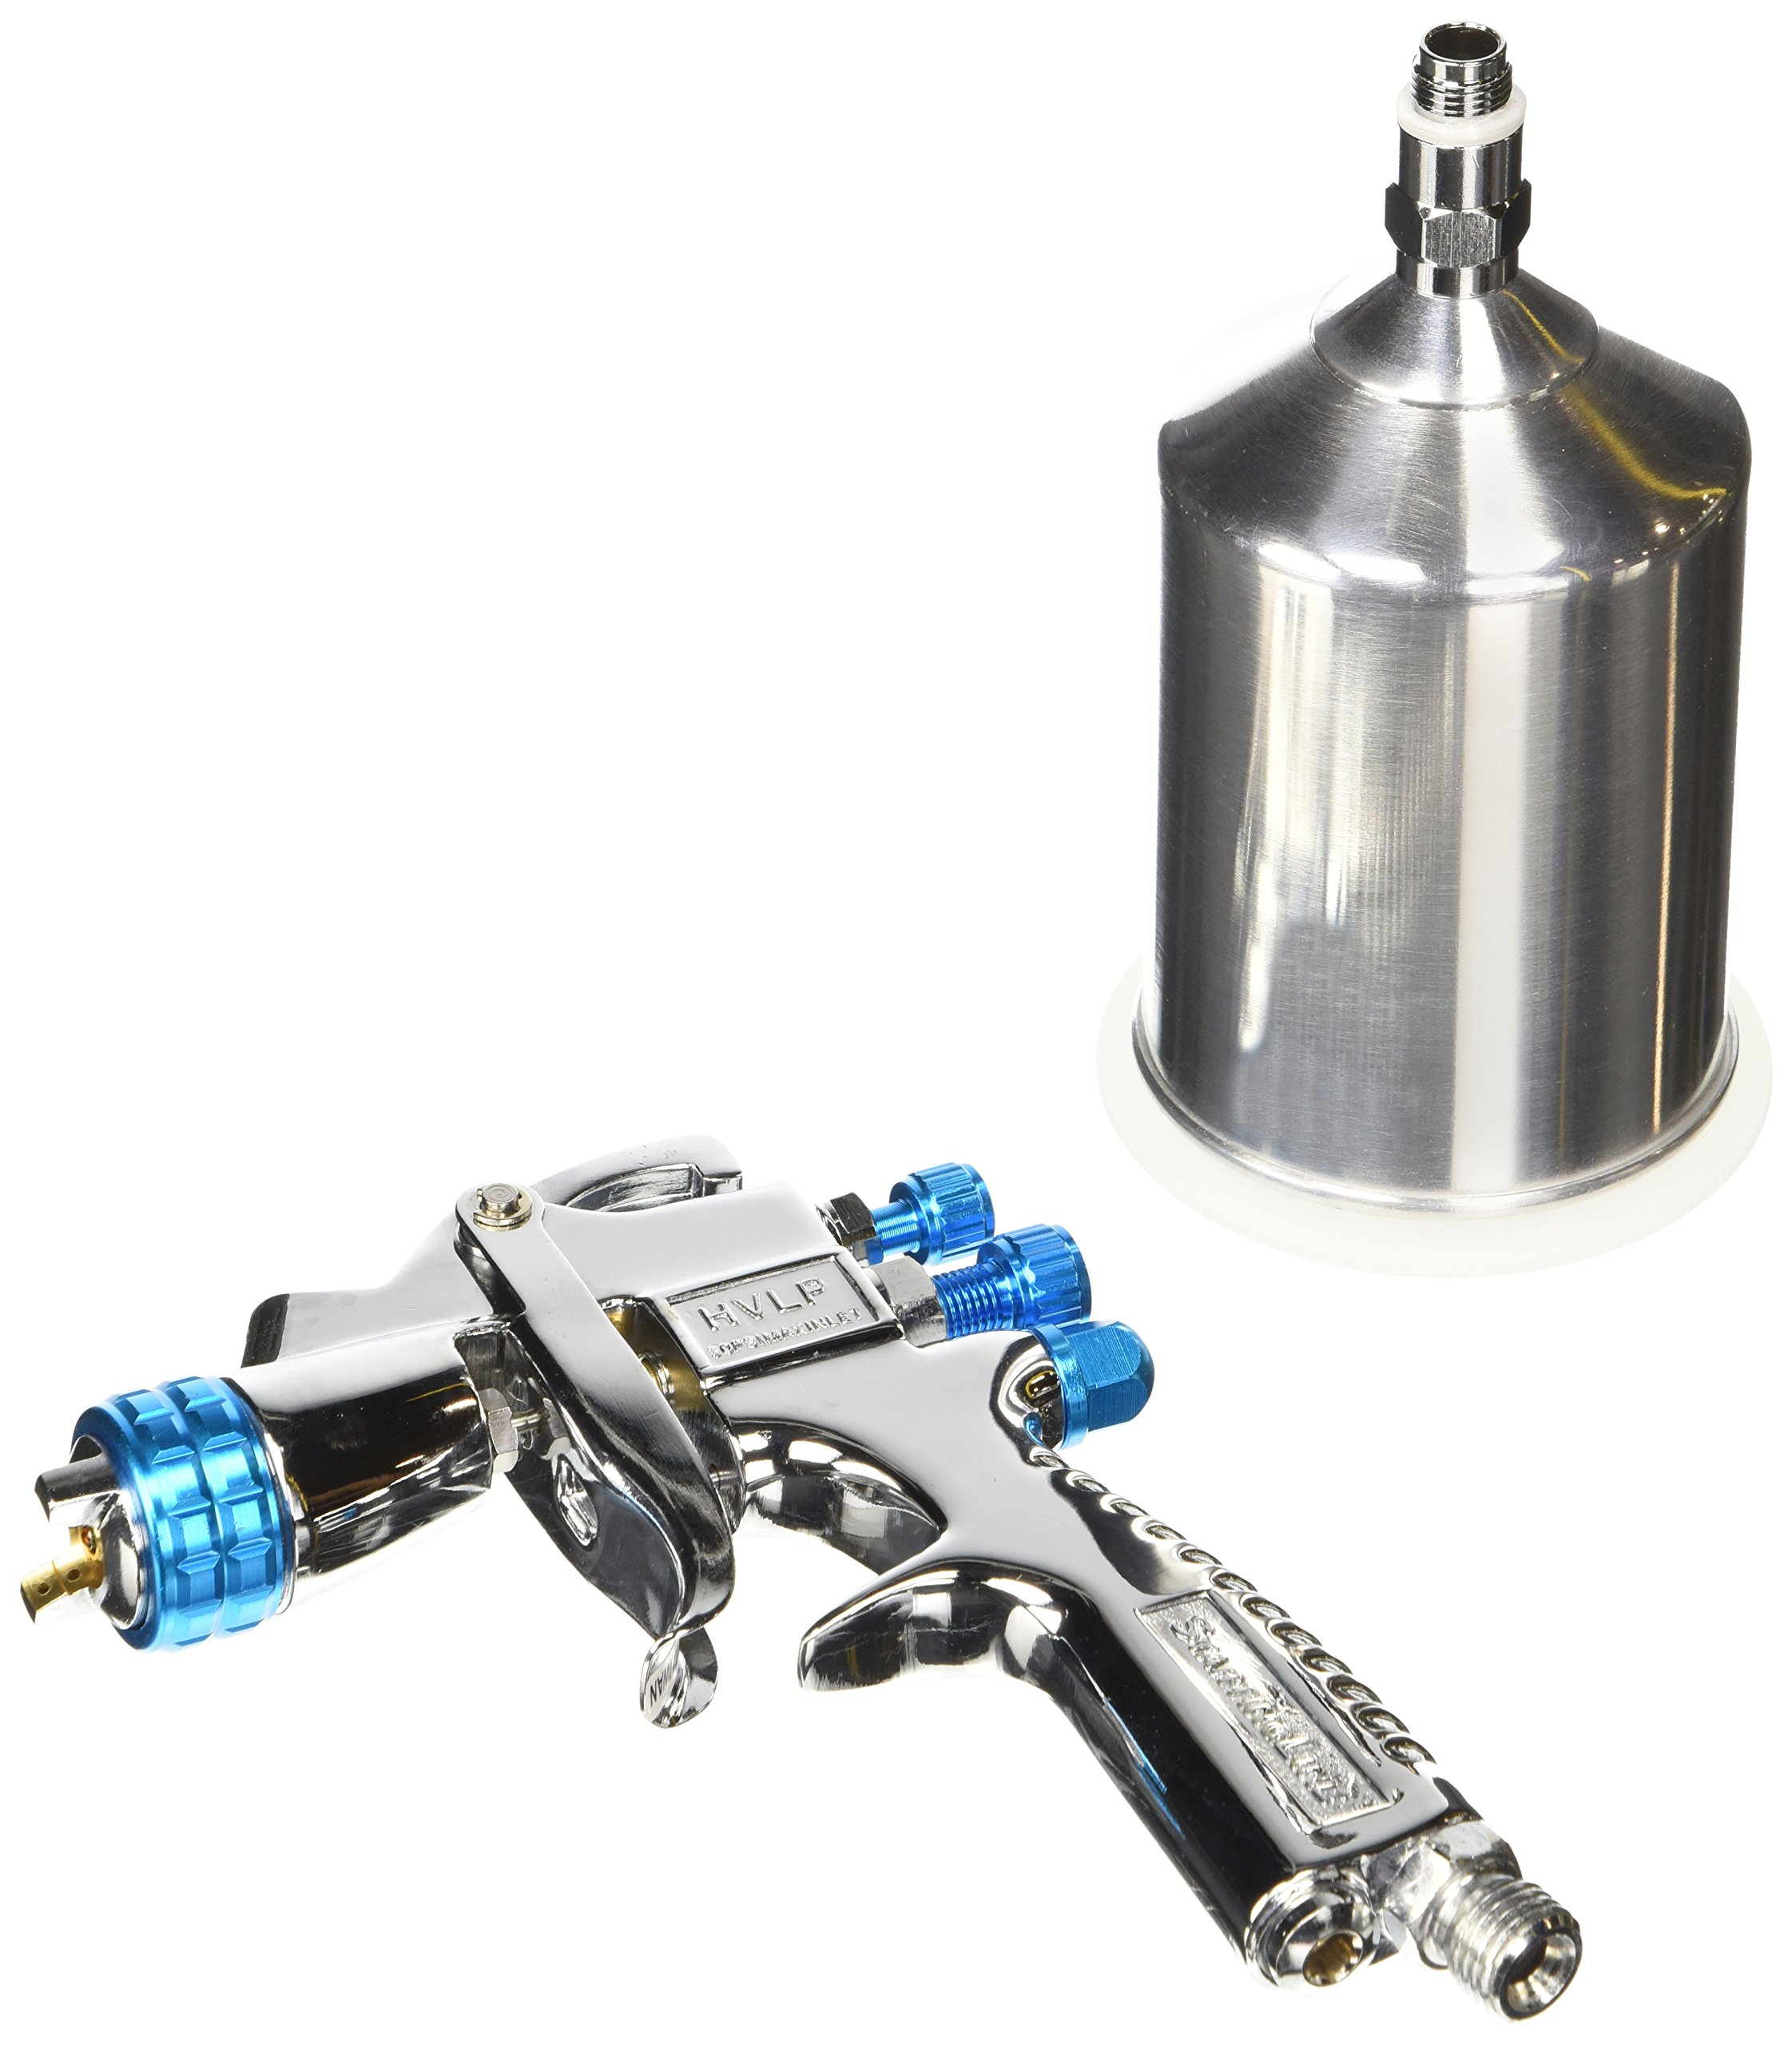 Devilbiss 802405 Spray Gun